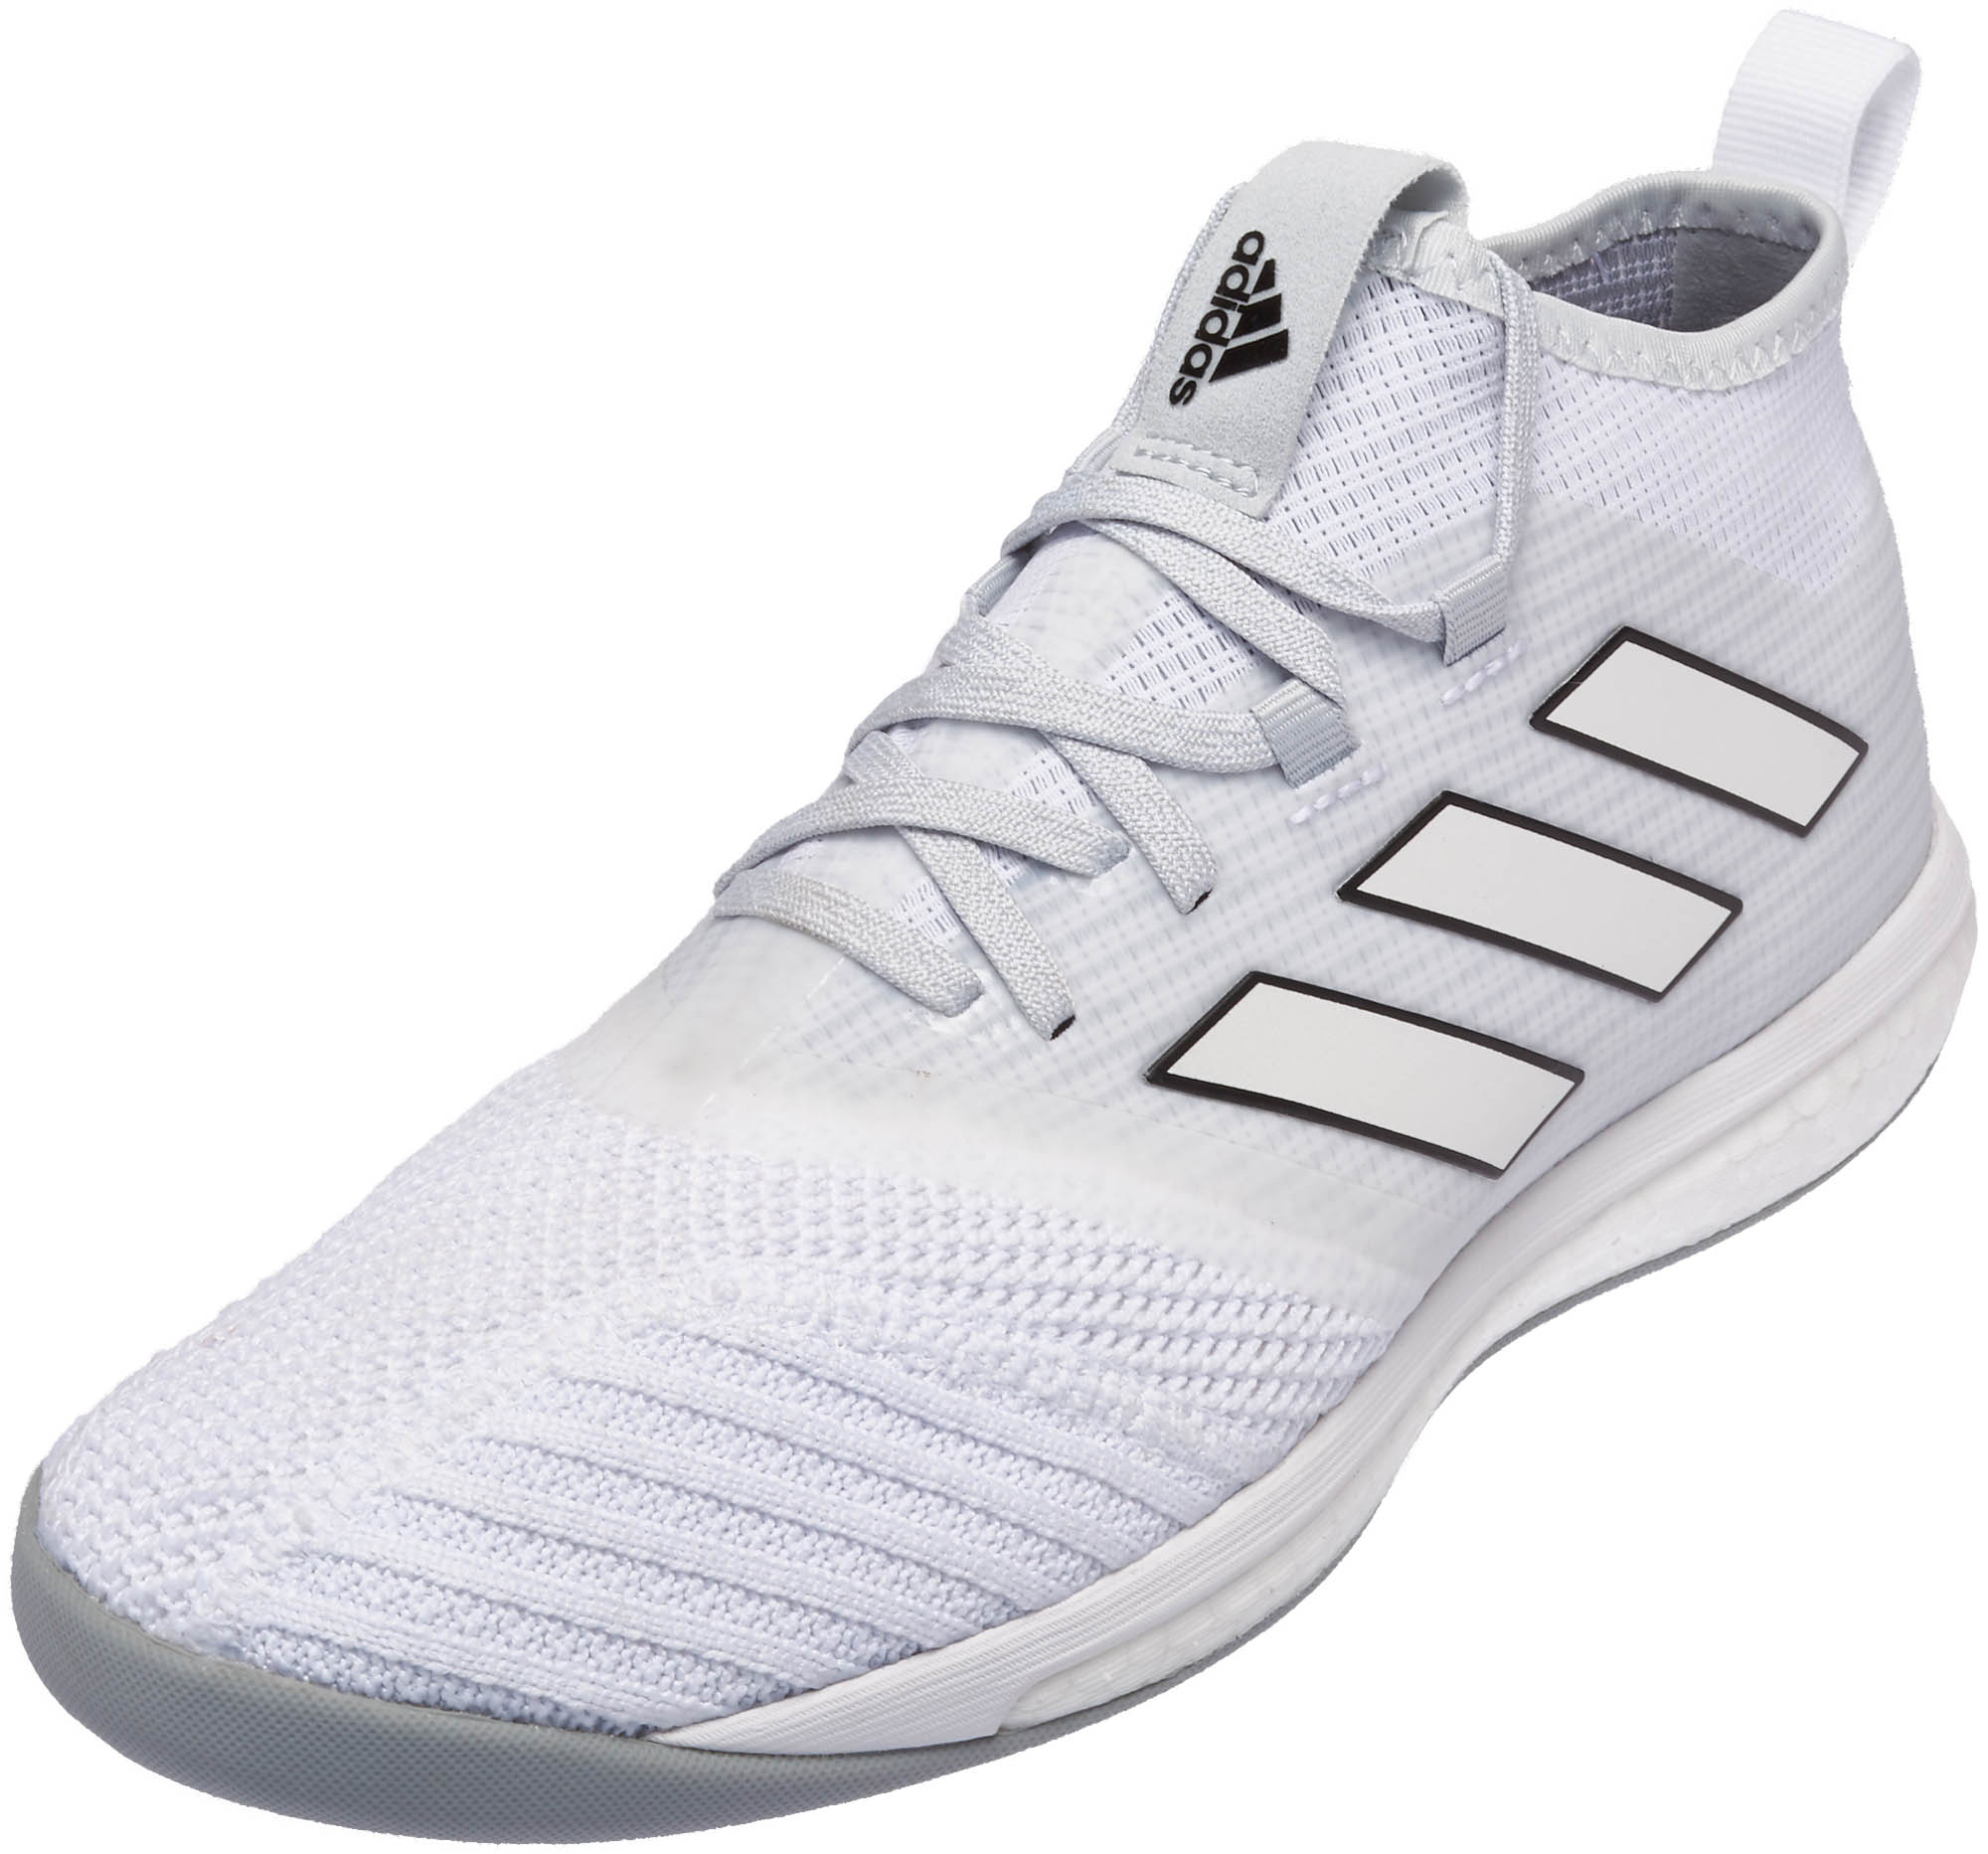 adidas ACE 17.1 Trainer adidas ACE Soccer Shoes